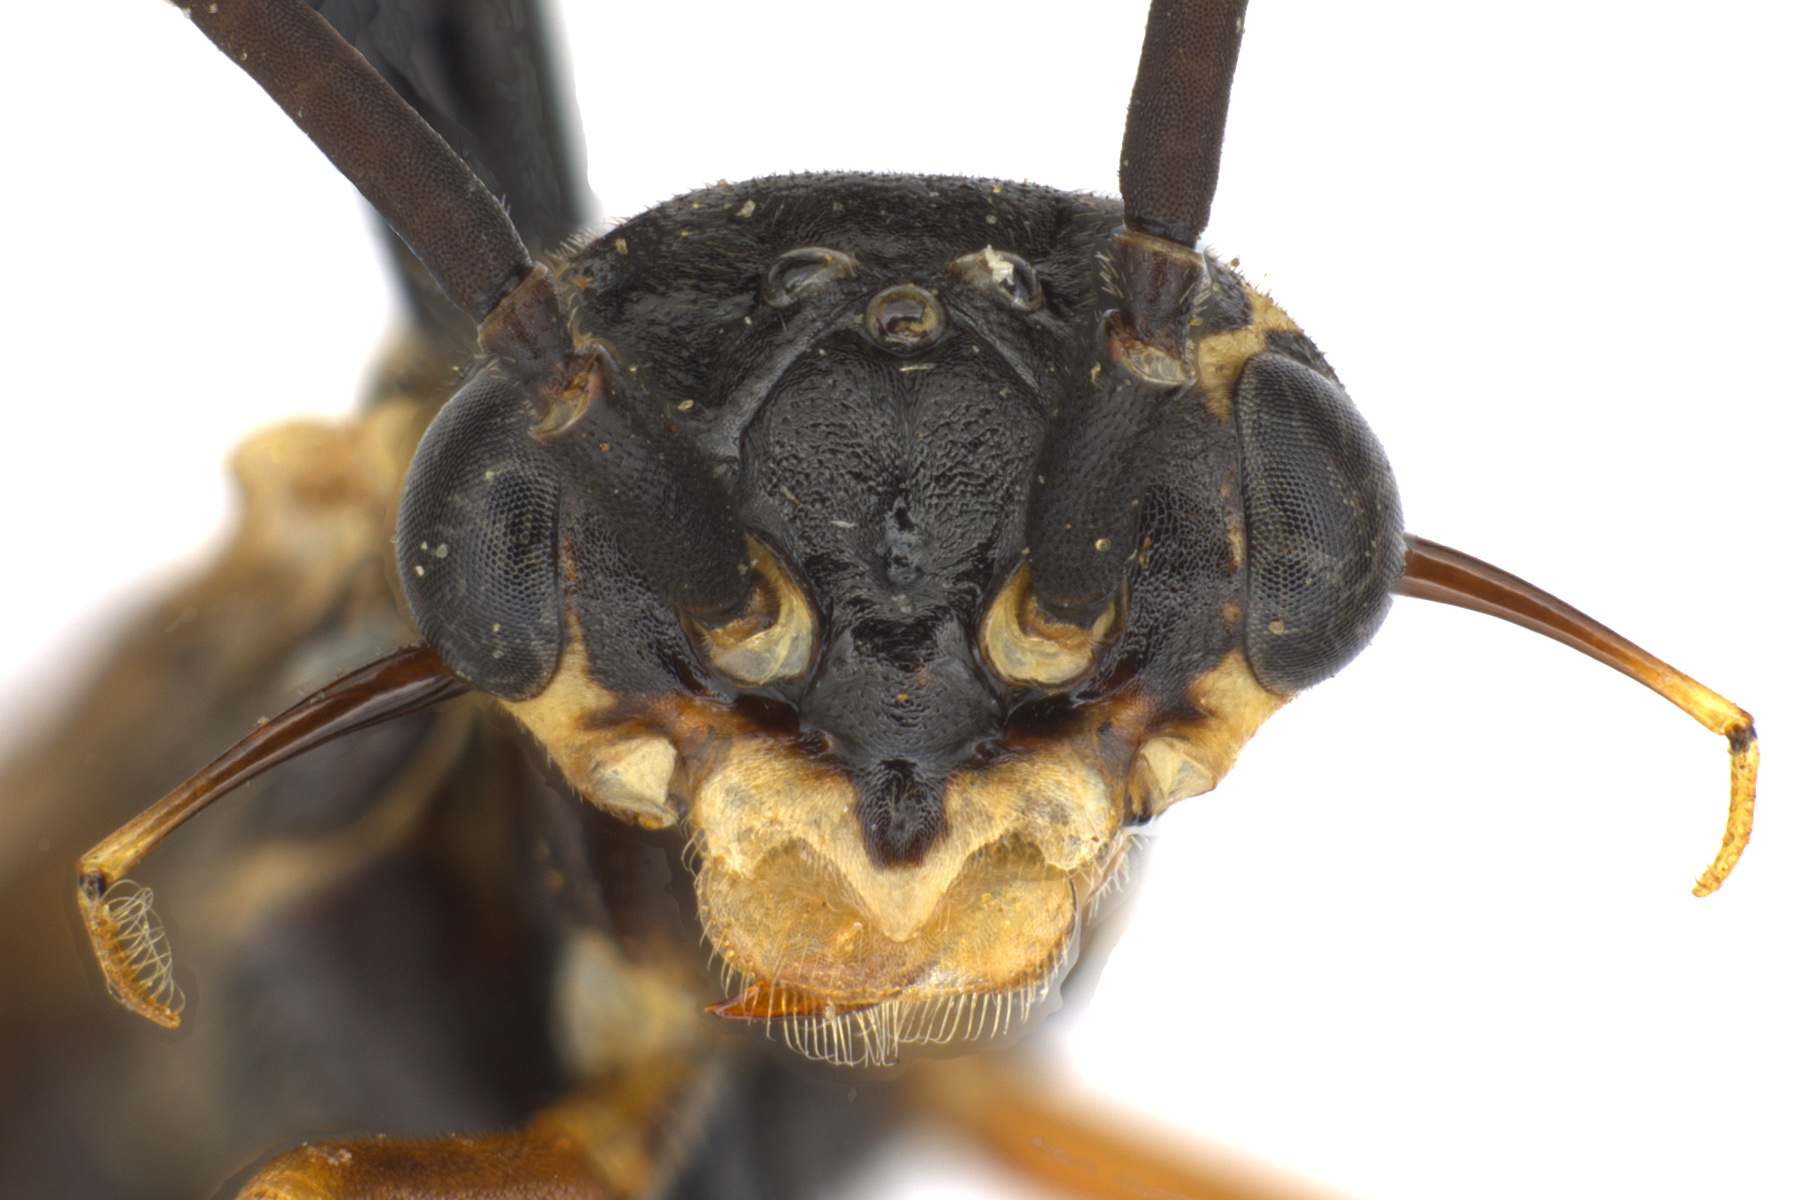 Xyelecia nearctica male face; photo by J. Orr, WSDA